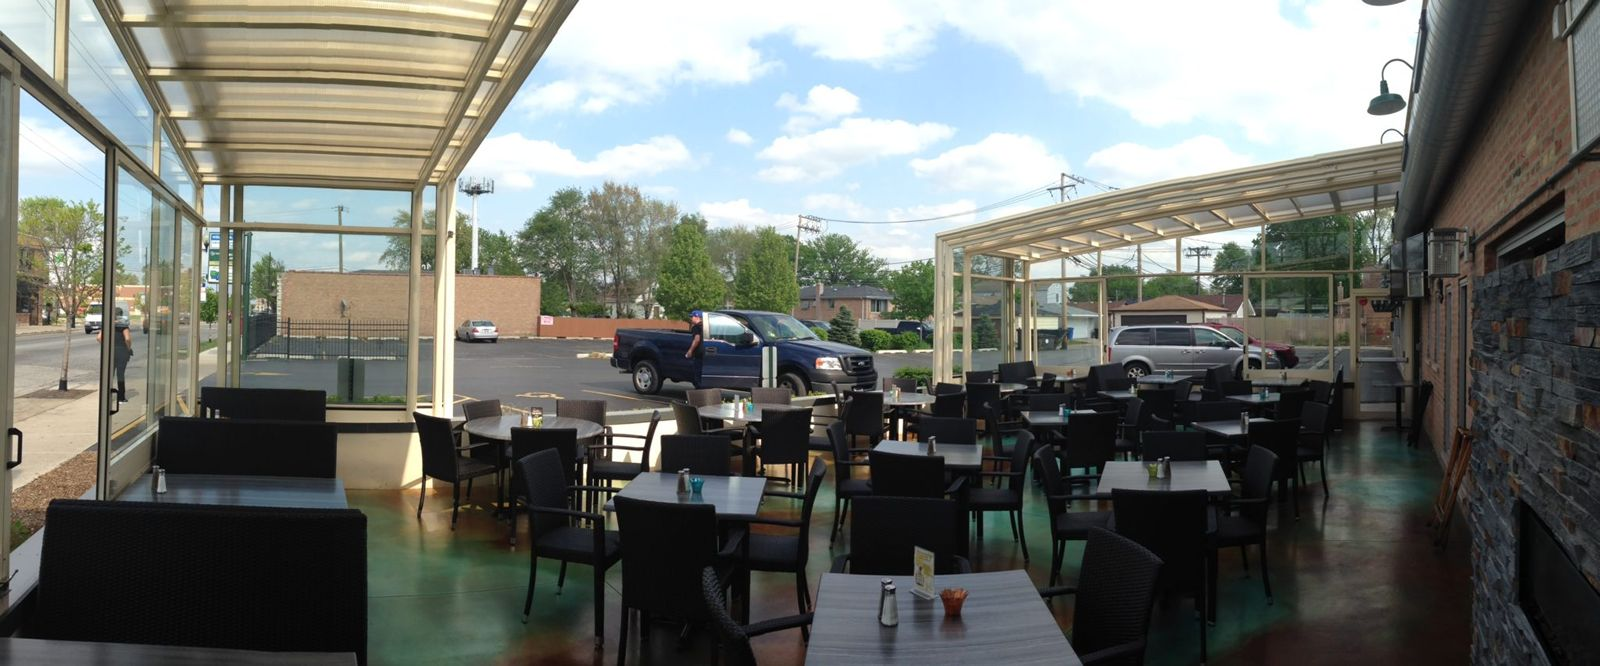 La Fiesta Mexican in Chicago is the Perfect Spot for a Year-Round Patio Party